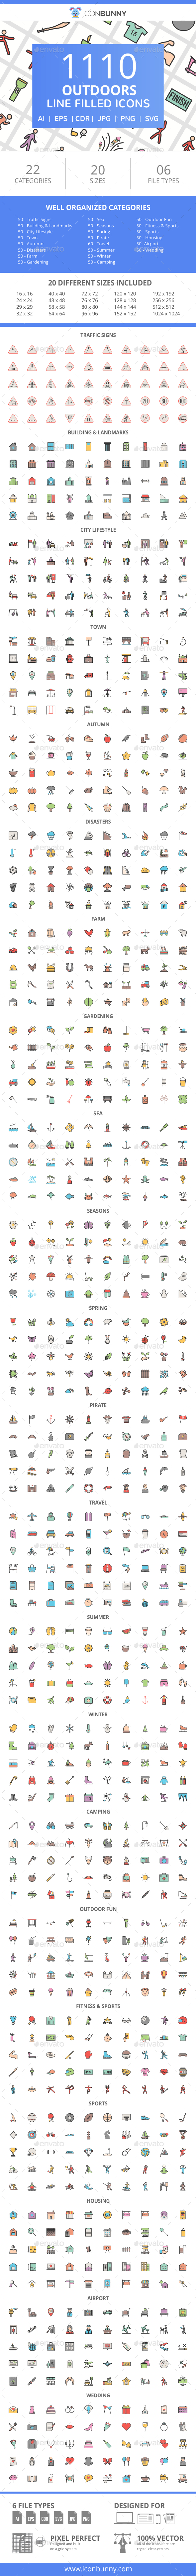 GraphicRiver 1110 Outdoors FIlled Line Icons 21087123